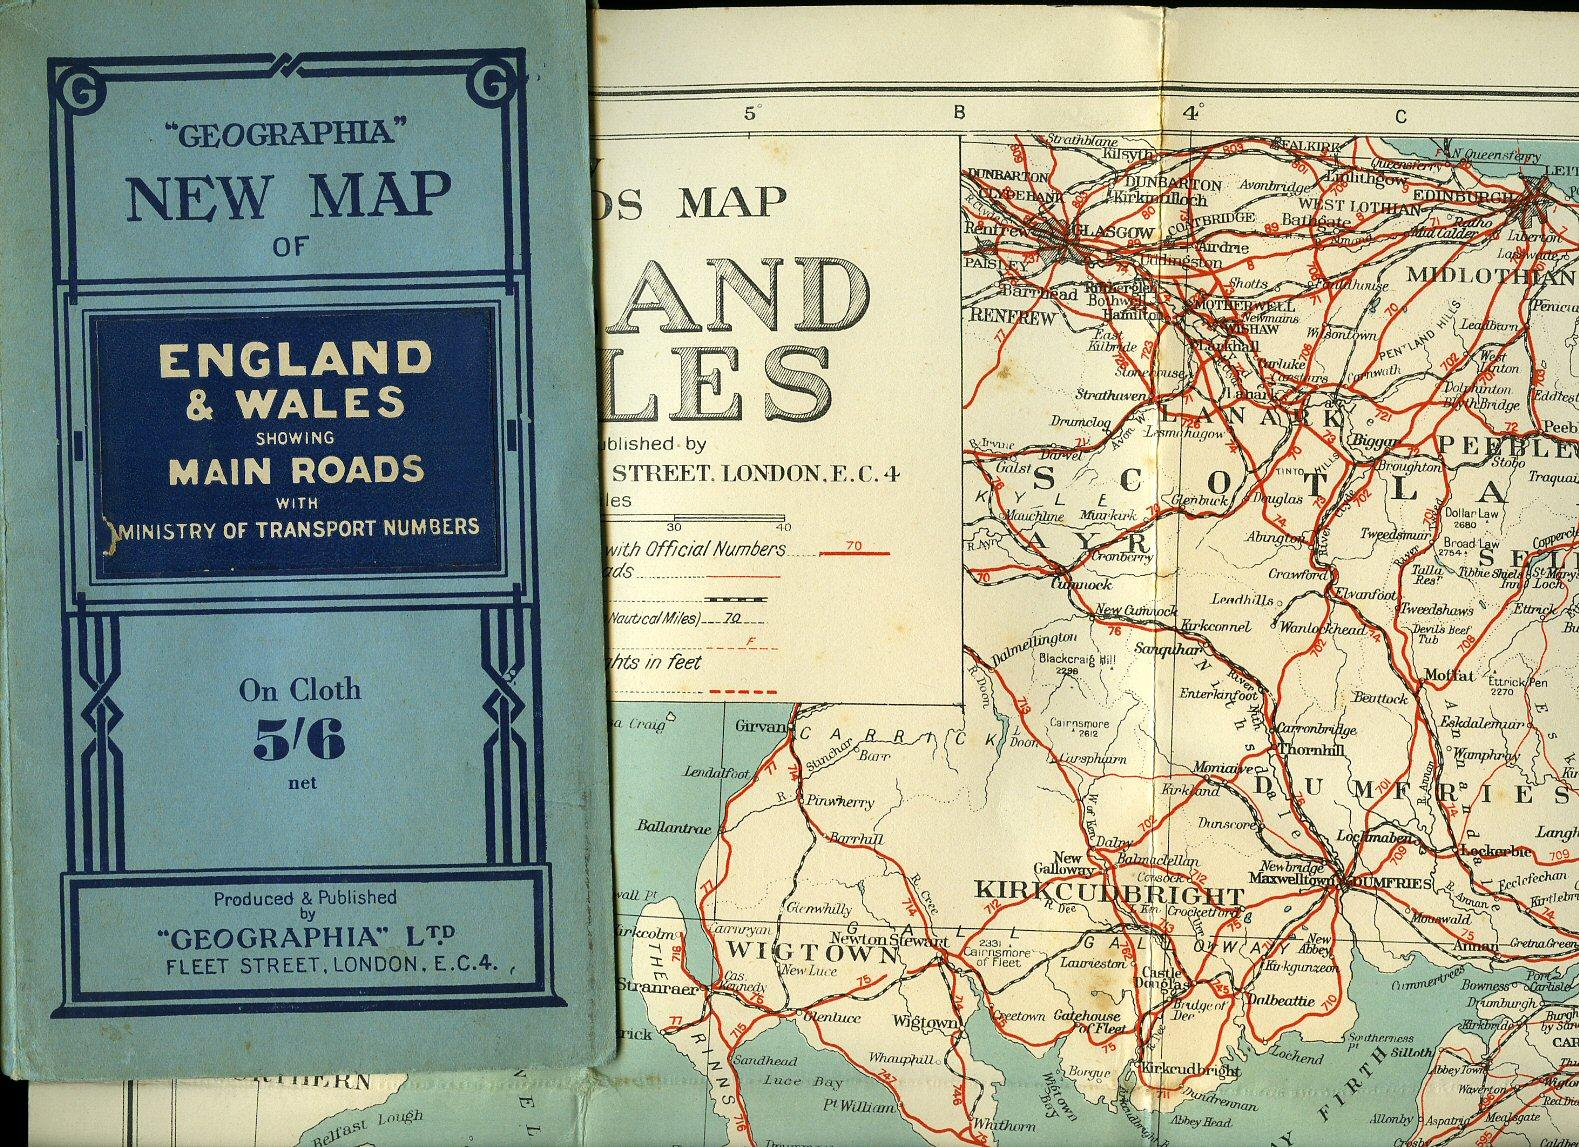 Driving Map Of England And Wales.Geographia Large Scale Road Map Of England